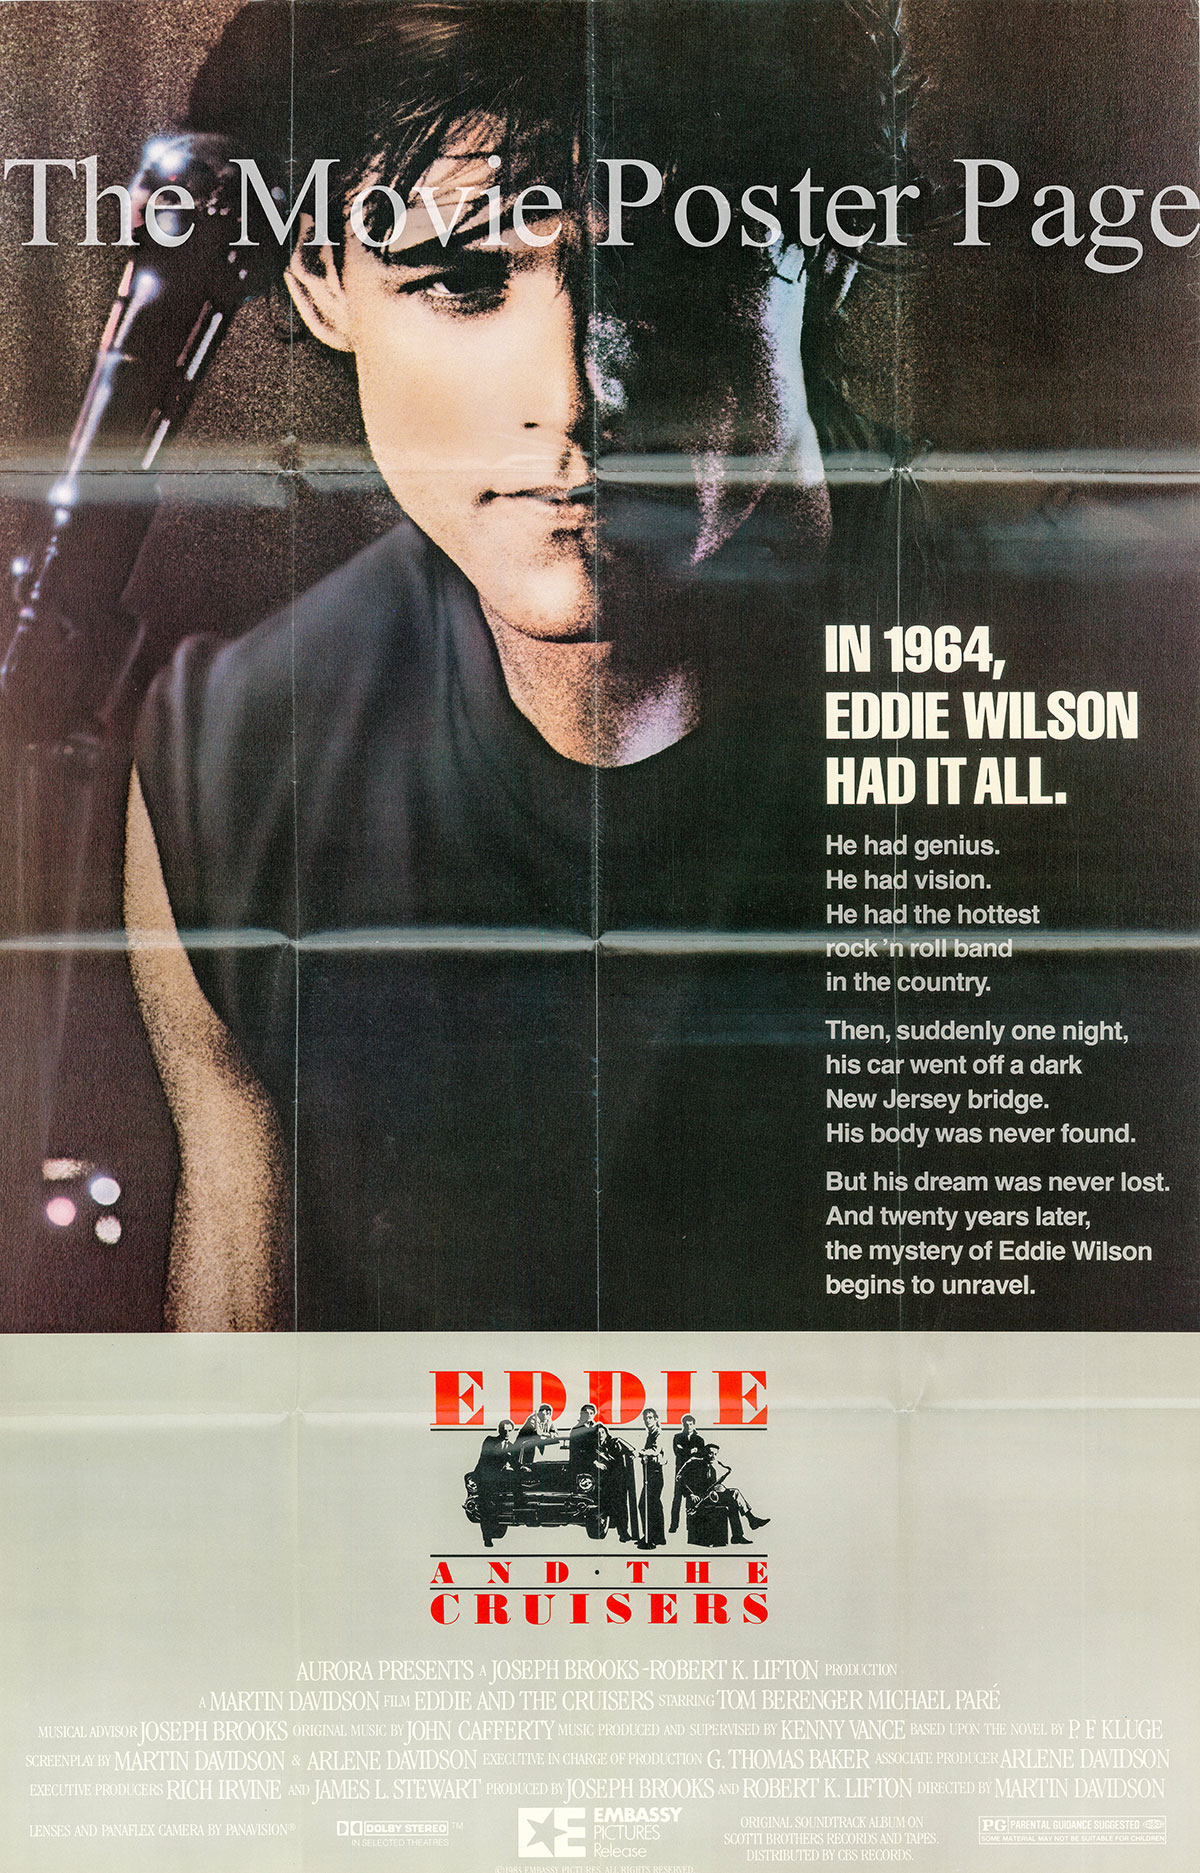 Pictured is a US promotional poster for the 1983 Martin Davidson film Eddie and the Cruisers starring Tom Berenger as Frank Ridgeway.